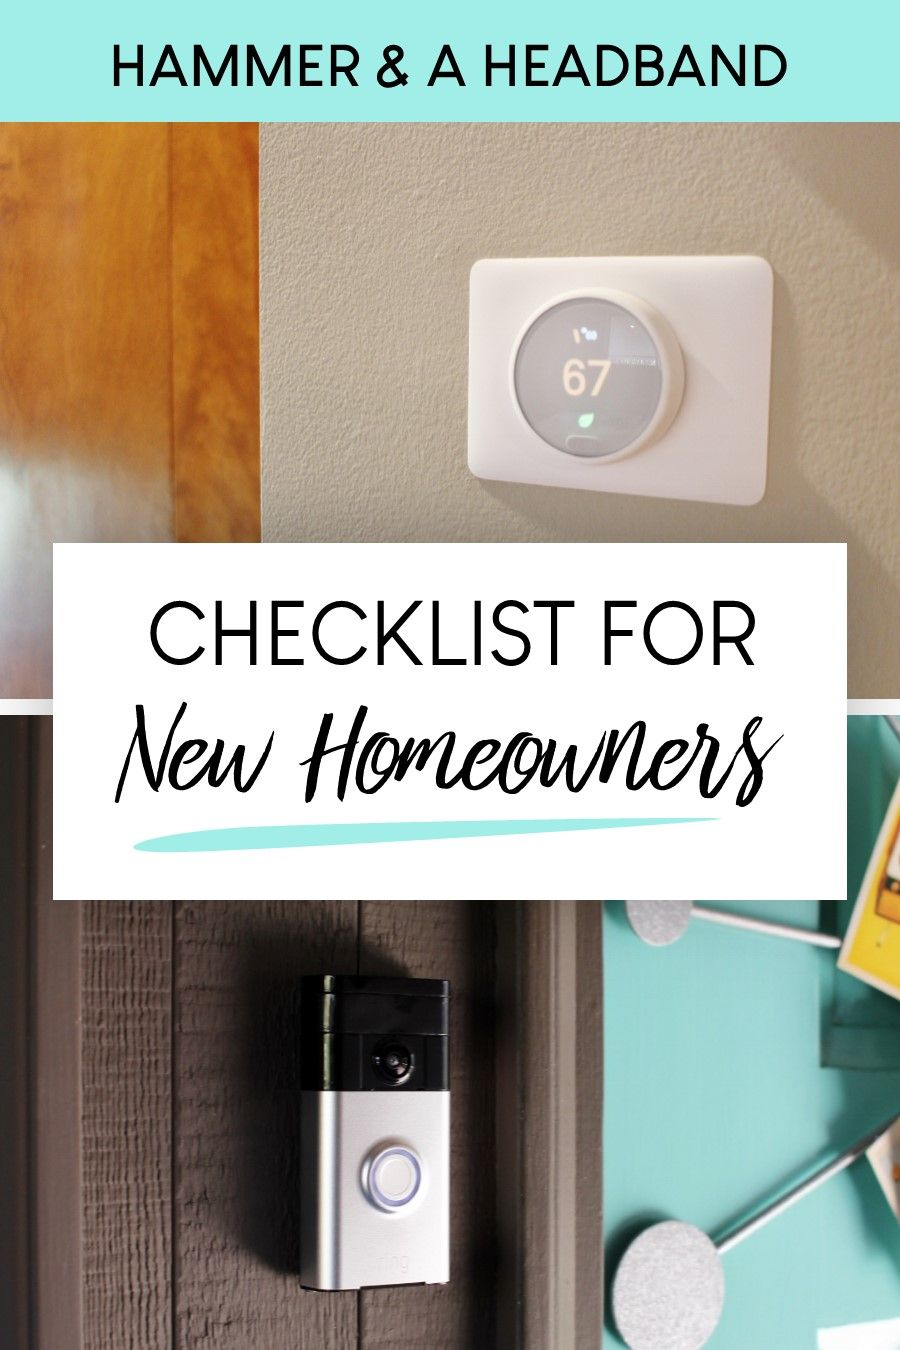 You might have thought getting a mortgage had a lot of hoops, but there are still several more tasks you need to complete to get your new home ready for living. This part of the move-in process doesn't have to be so confusing, though. Here's a complete checklist of all those little tasks new homeowners need to do, from turning on utilities to adding safety features and increasing efficiency. #newhome #homeownership